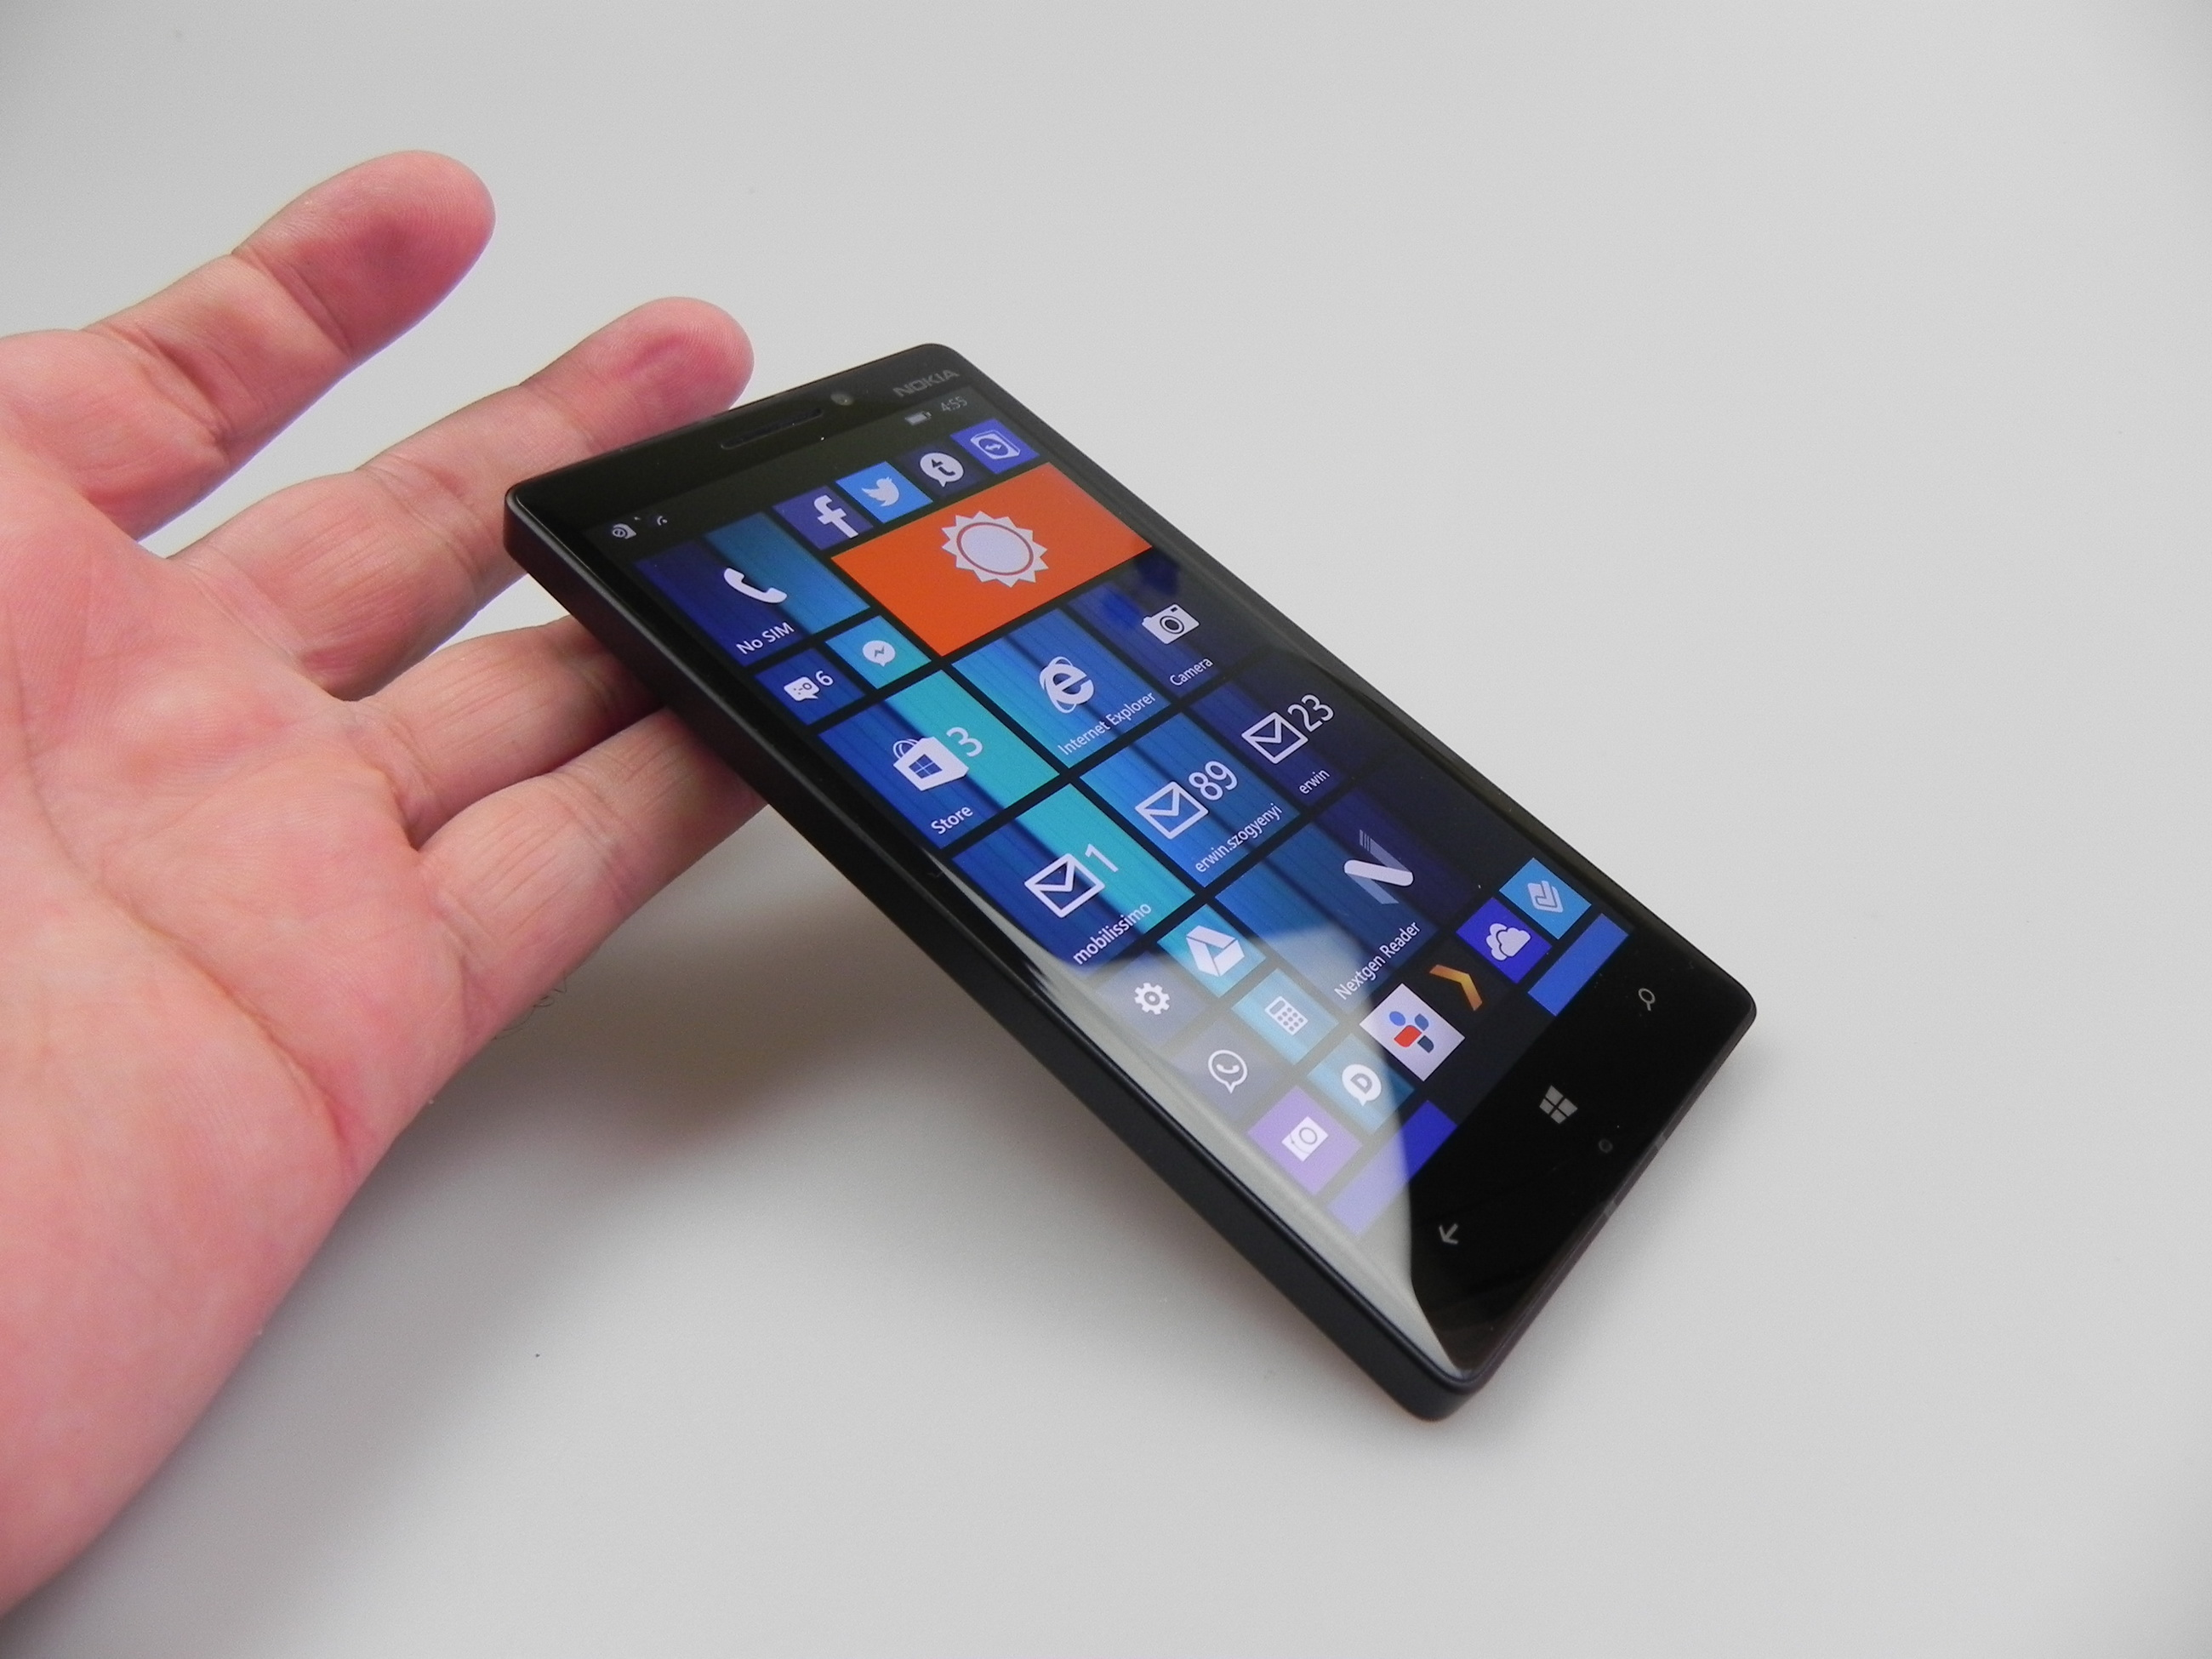 Nokia Lumia 930 Review Excellent Multimedia Based Quot Brick Quot Phone With Great Low Light Camera